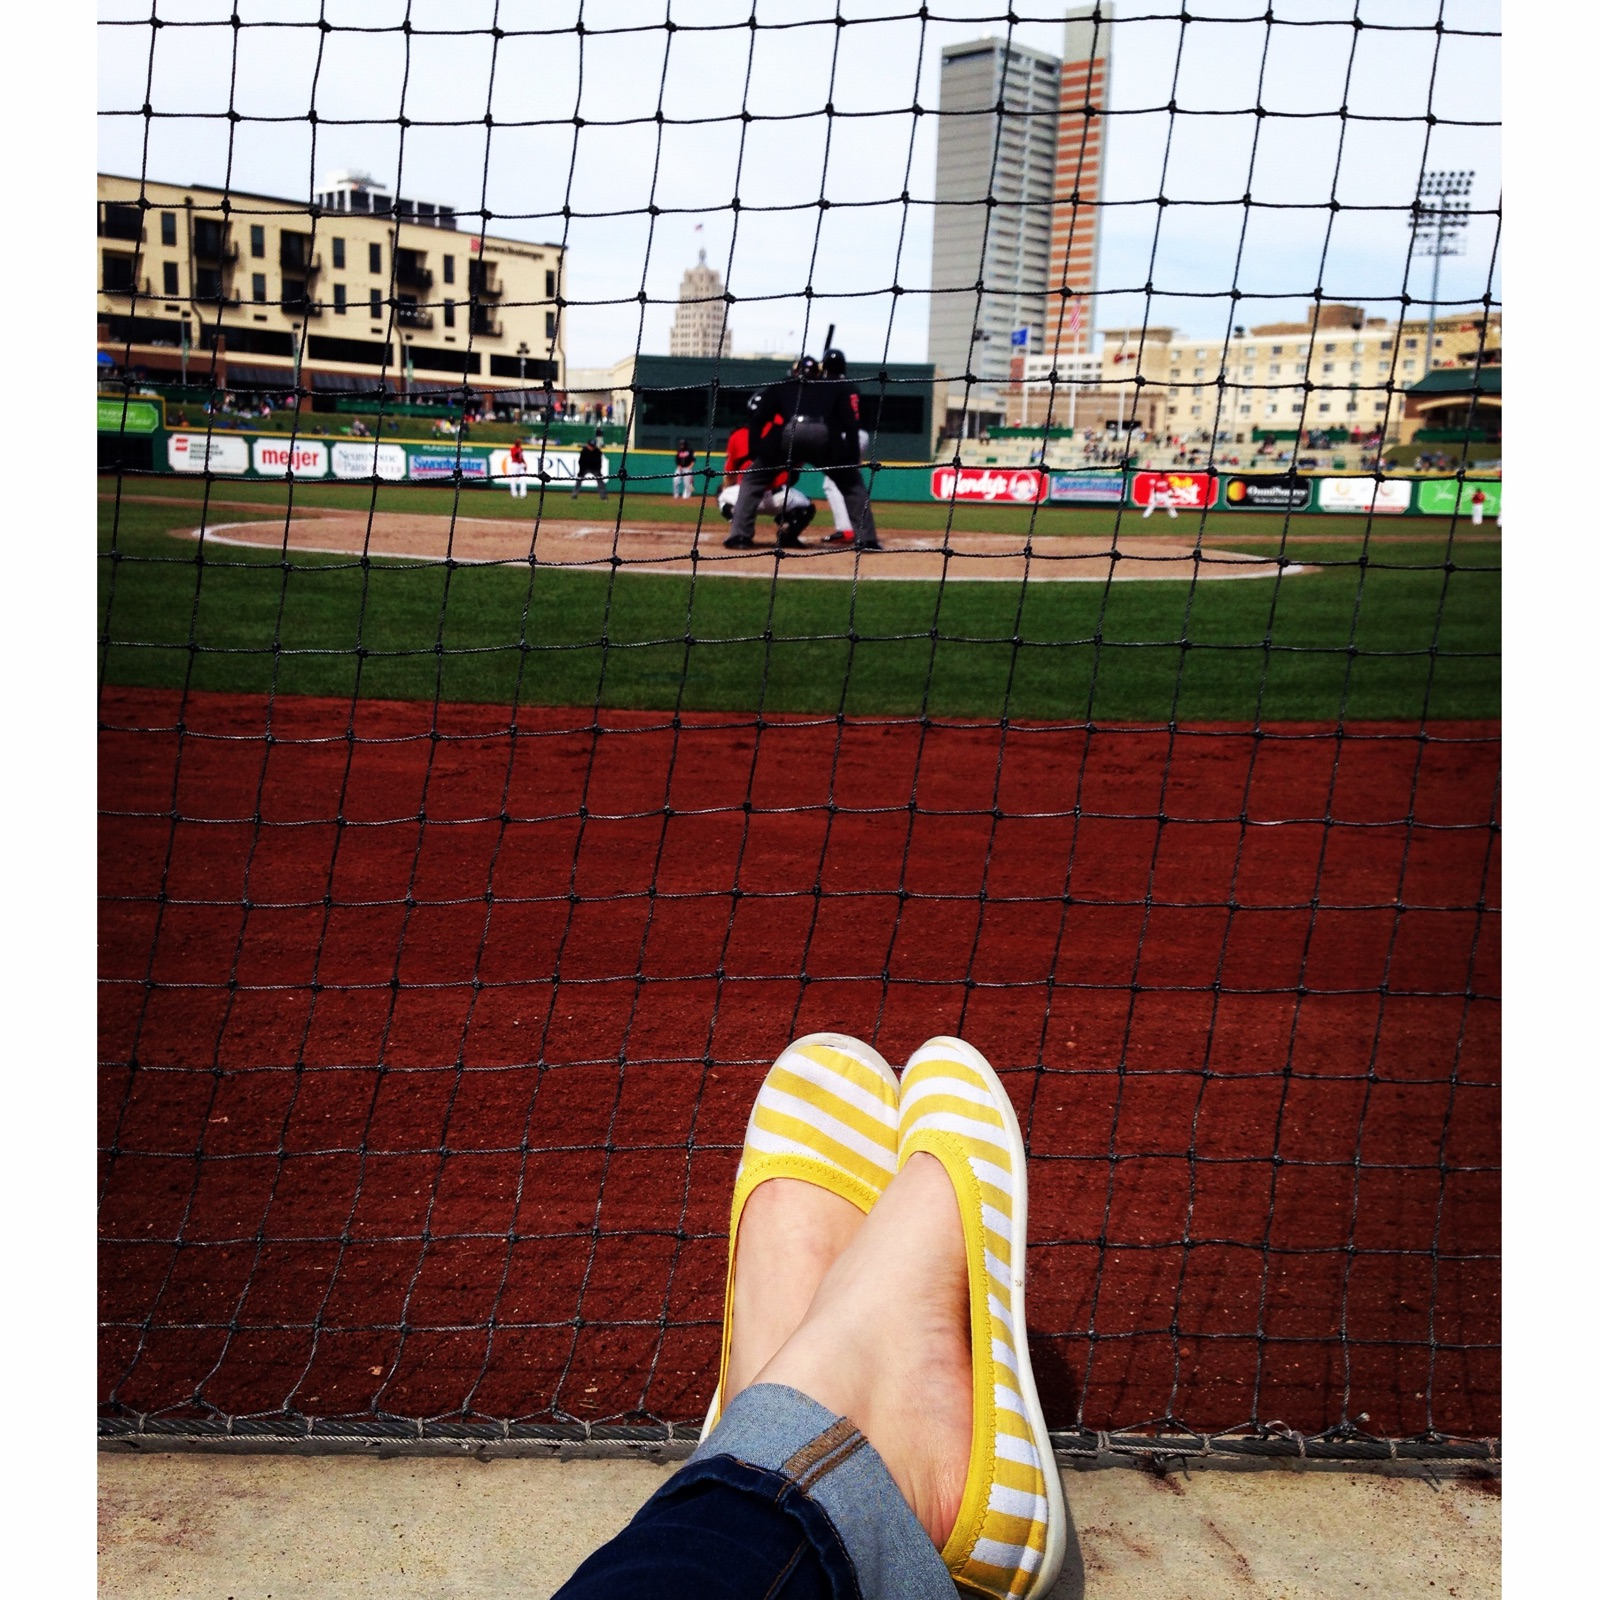 Kick your feet up and relax while watching the TinCaps.